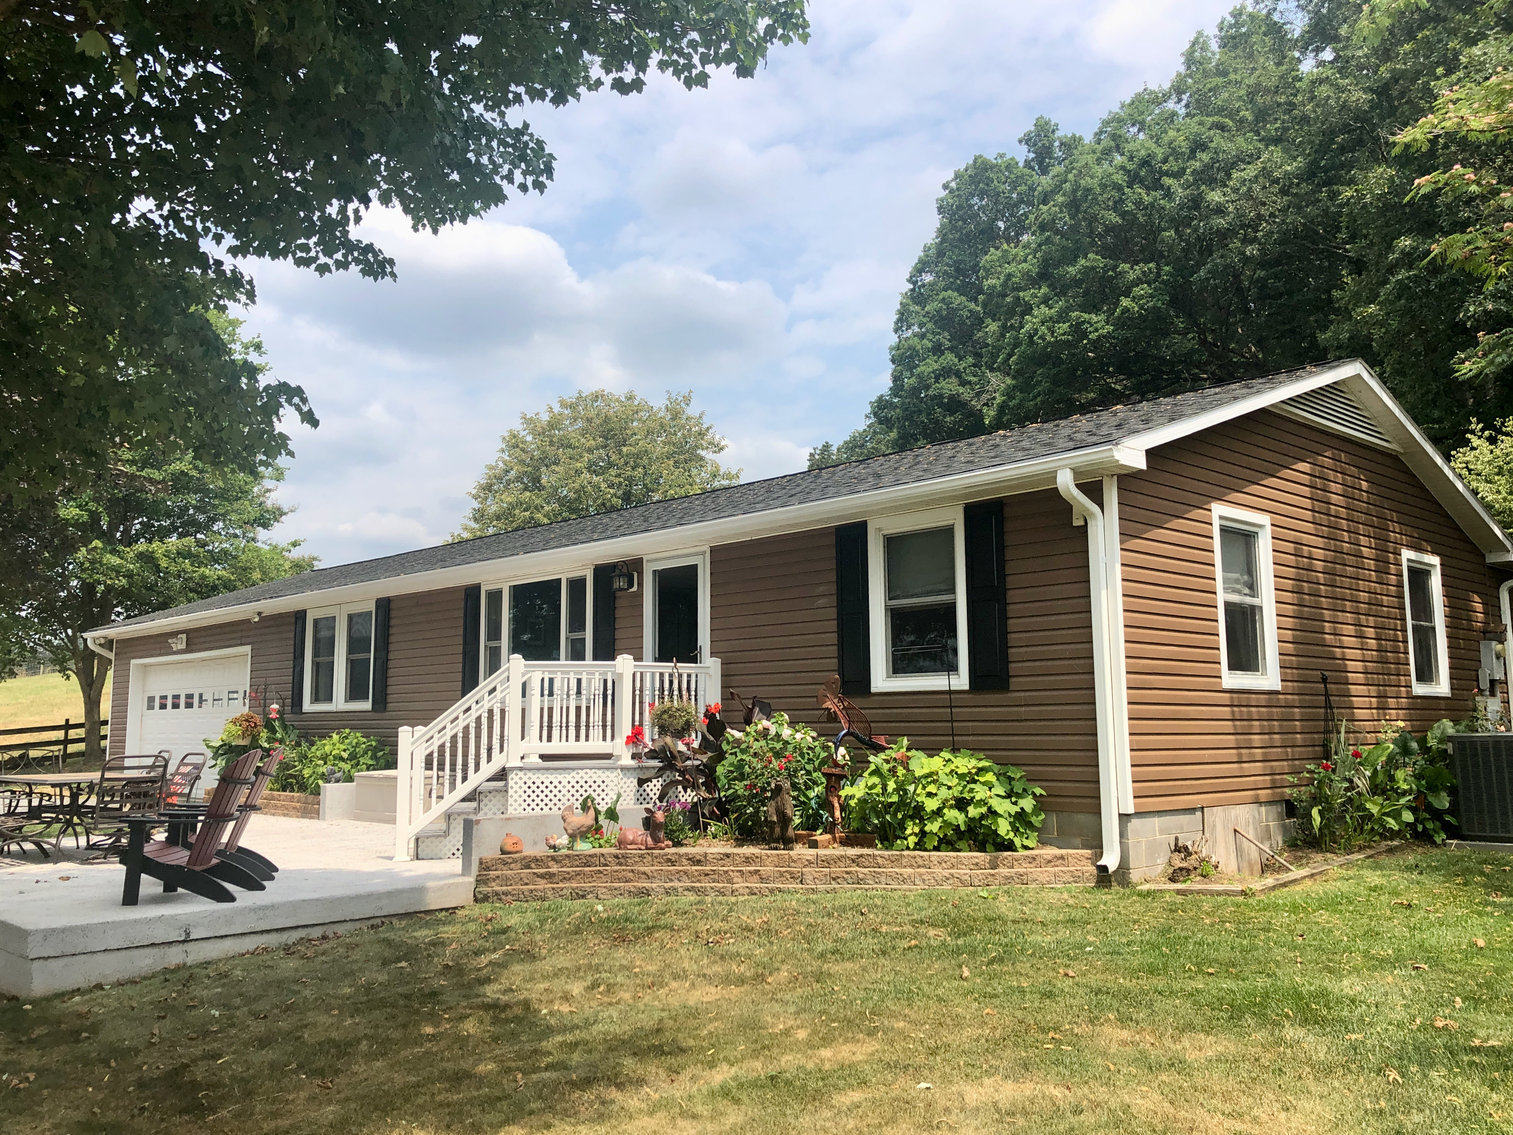 Image for Combo of #1 and #2 -- Immaculate 3 BR/2 BA Home on .88 +/- Acre Lot and 47.9 +/- Acre Farm  --  Rockingham County, VA